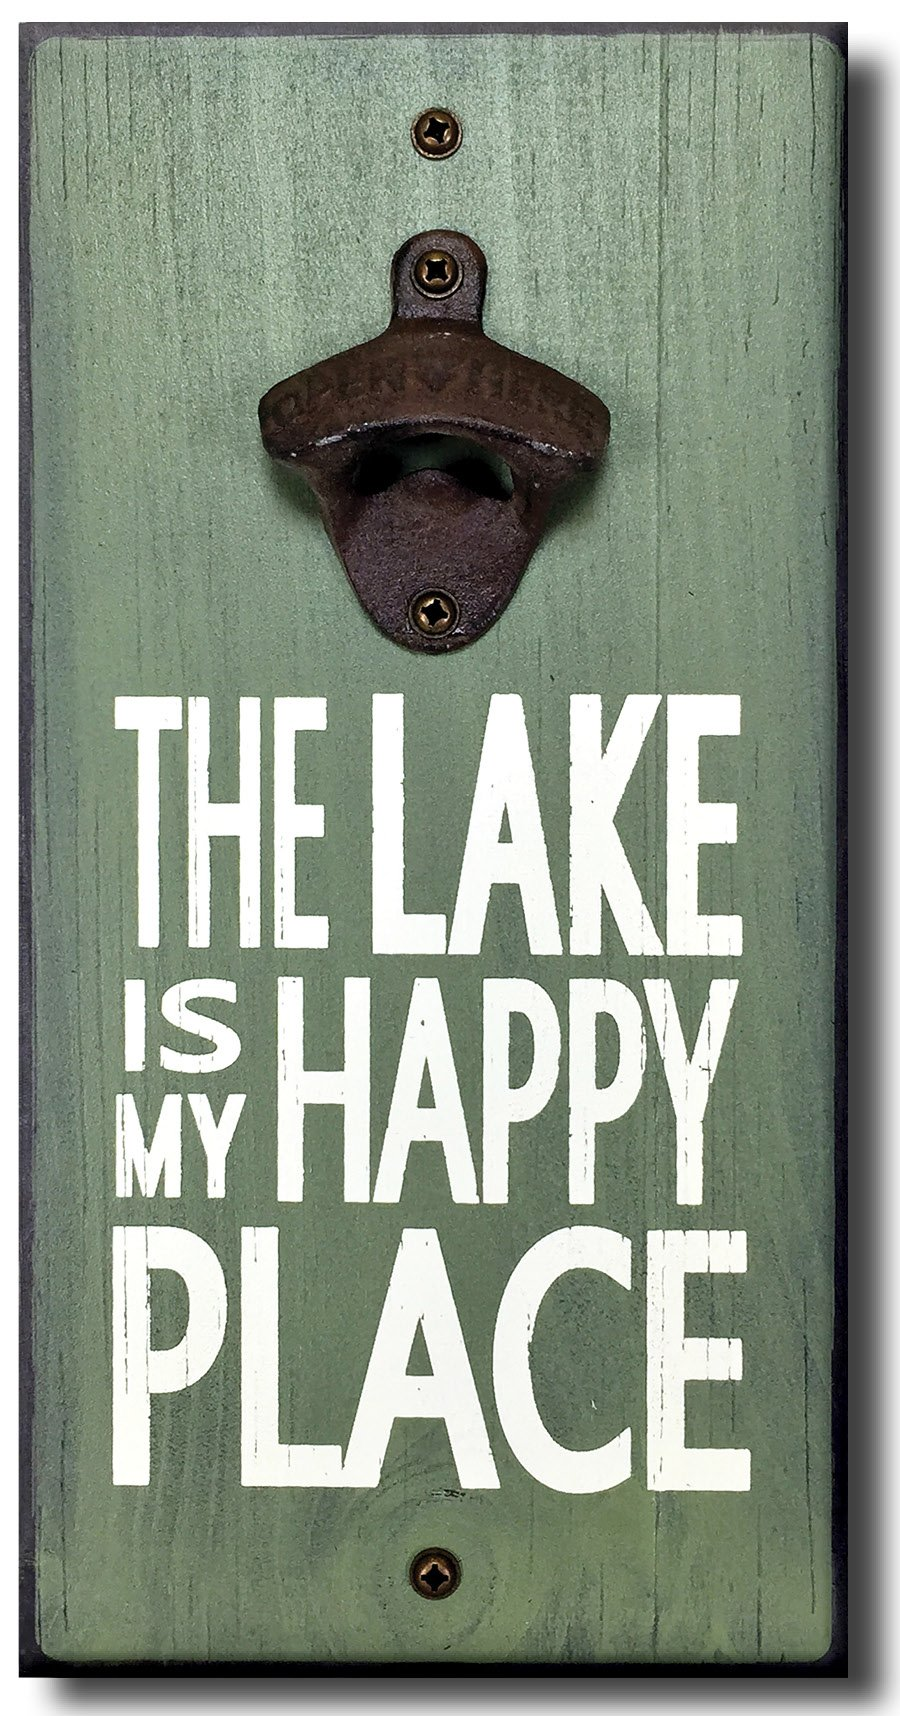 Lake is My Happy Place - Wooden Wall Mounted Bottle Opener by My Word!